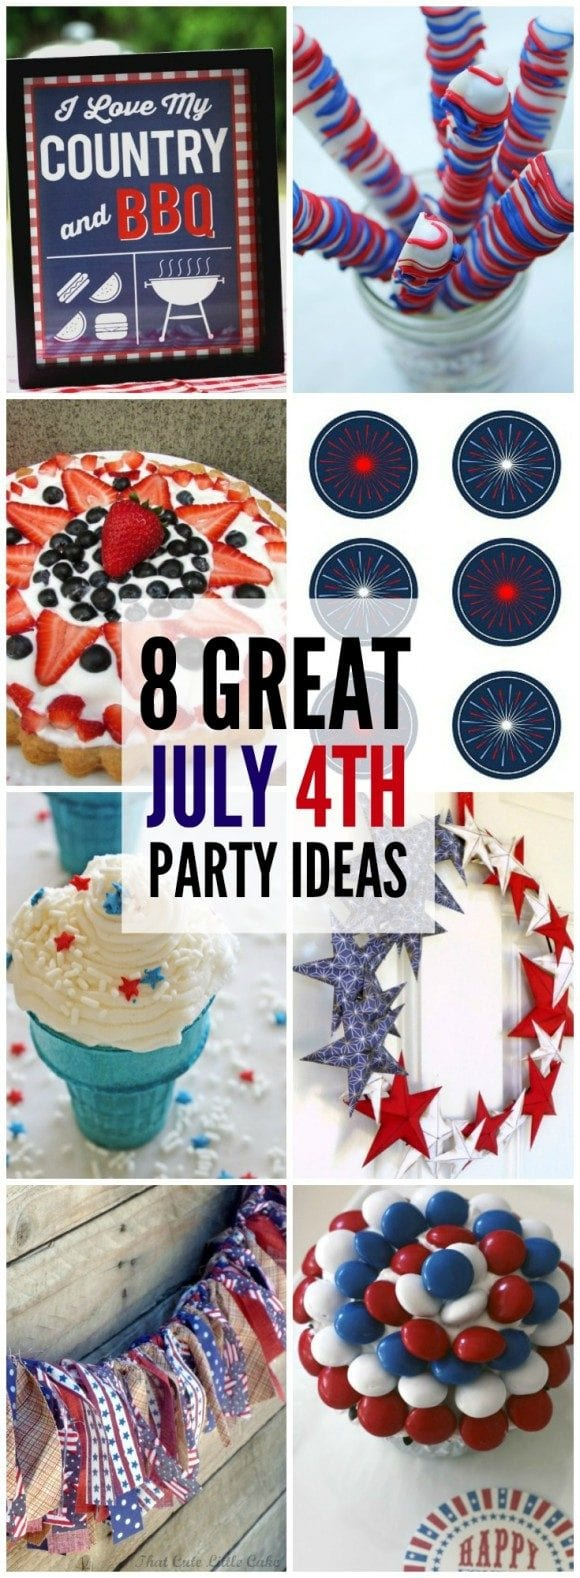 8 Great July 4th Party Ideas | CatchMyParty.com